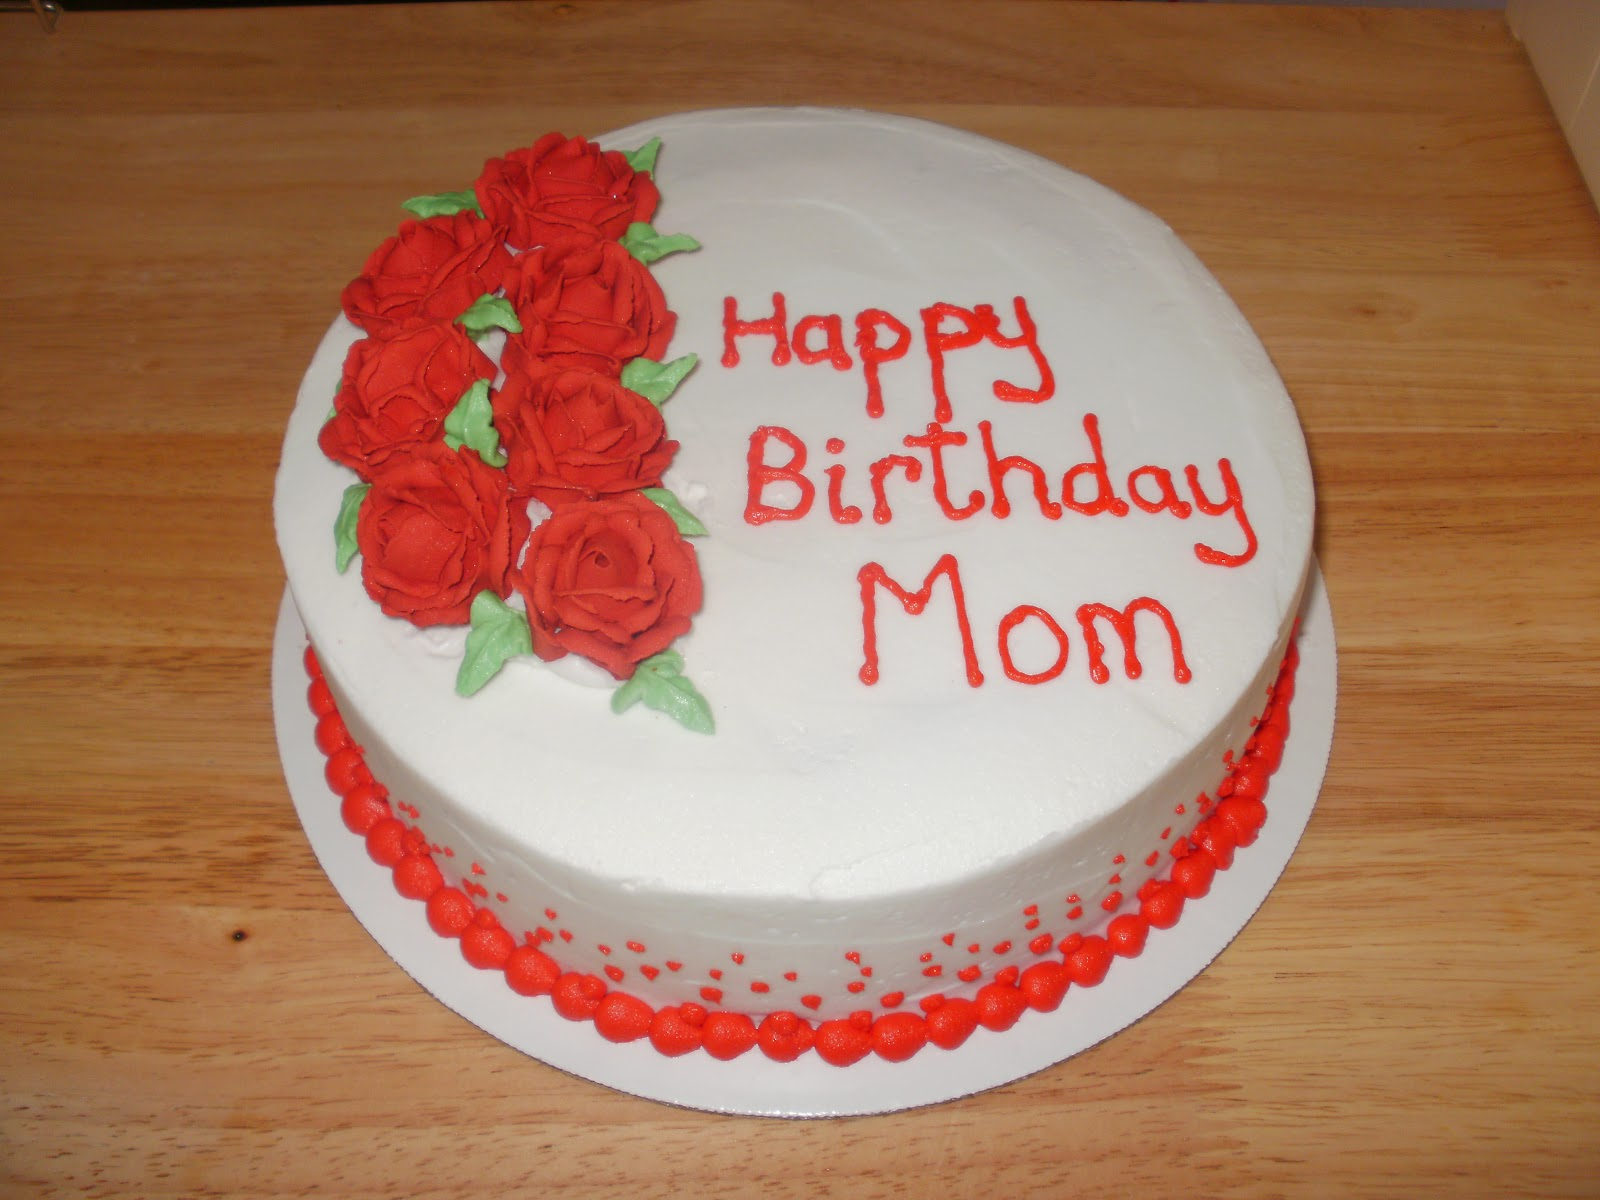 Cake Pictures For Mom : The Many Adventures of a Sunflour Cake Mom: Happy Birthday ...